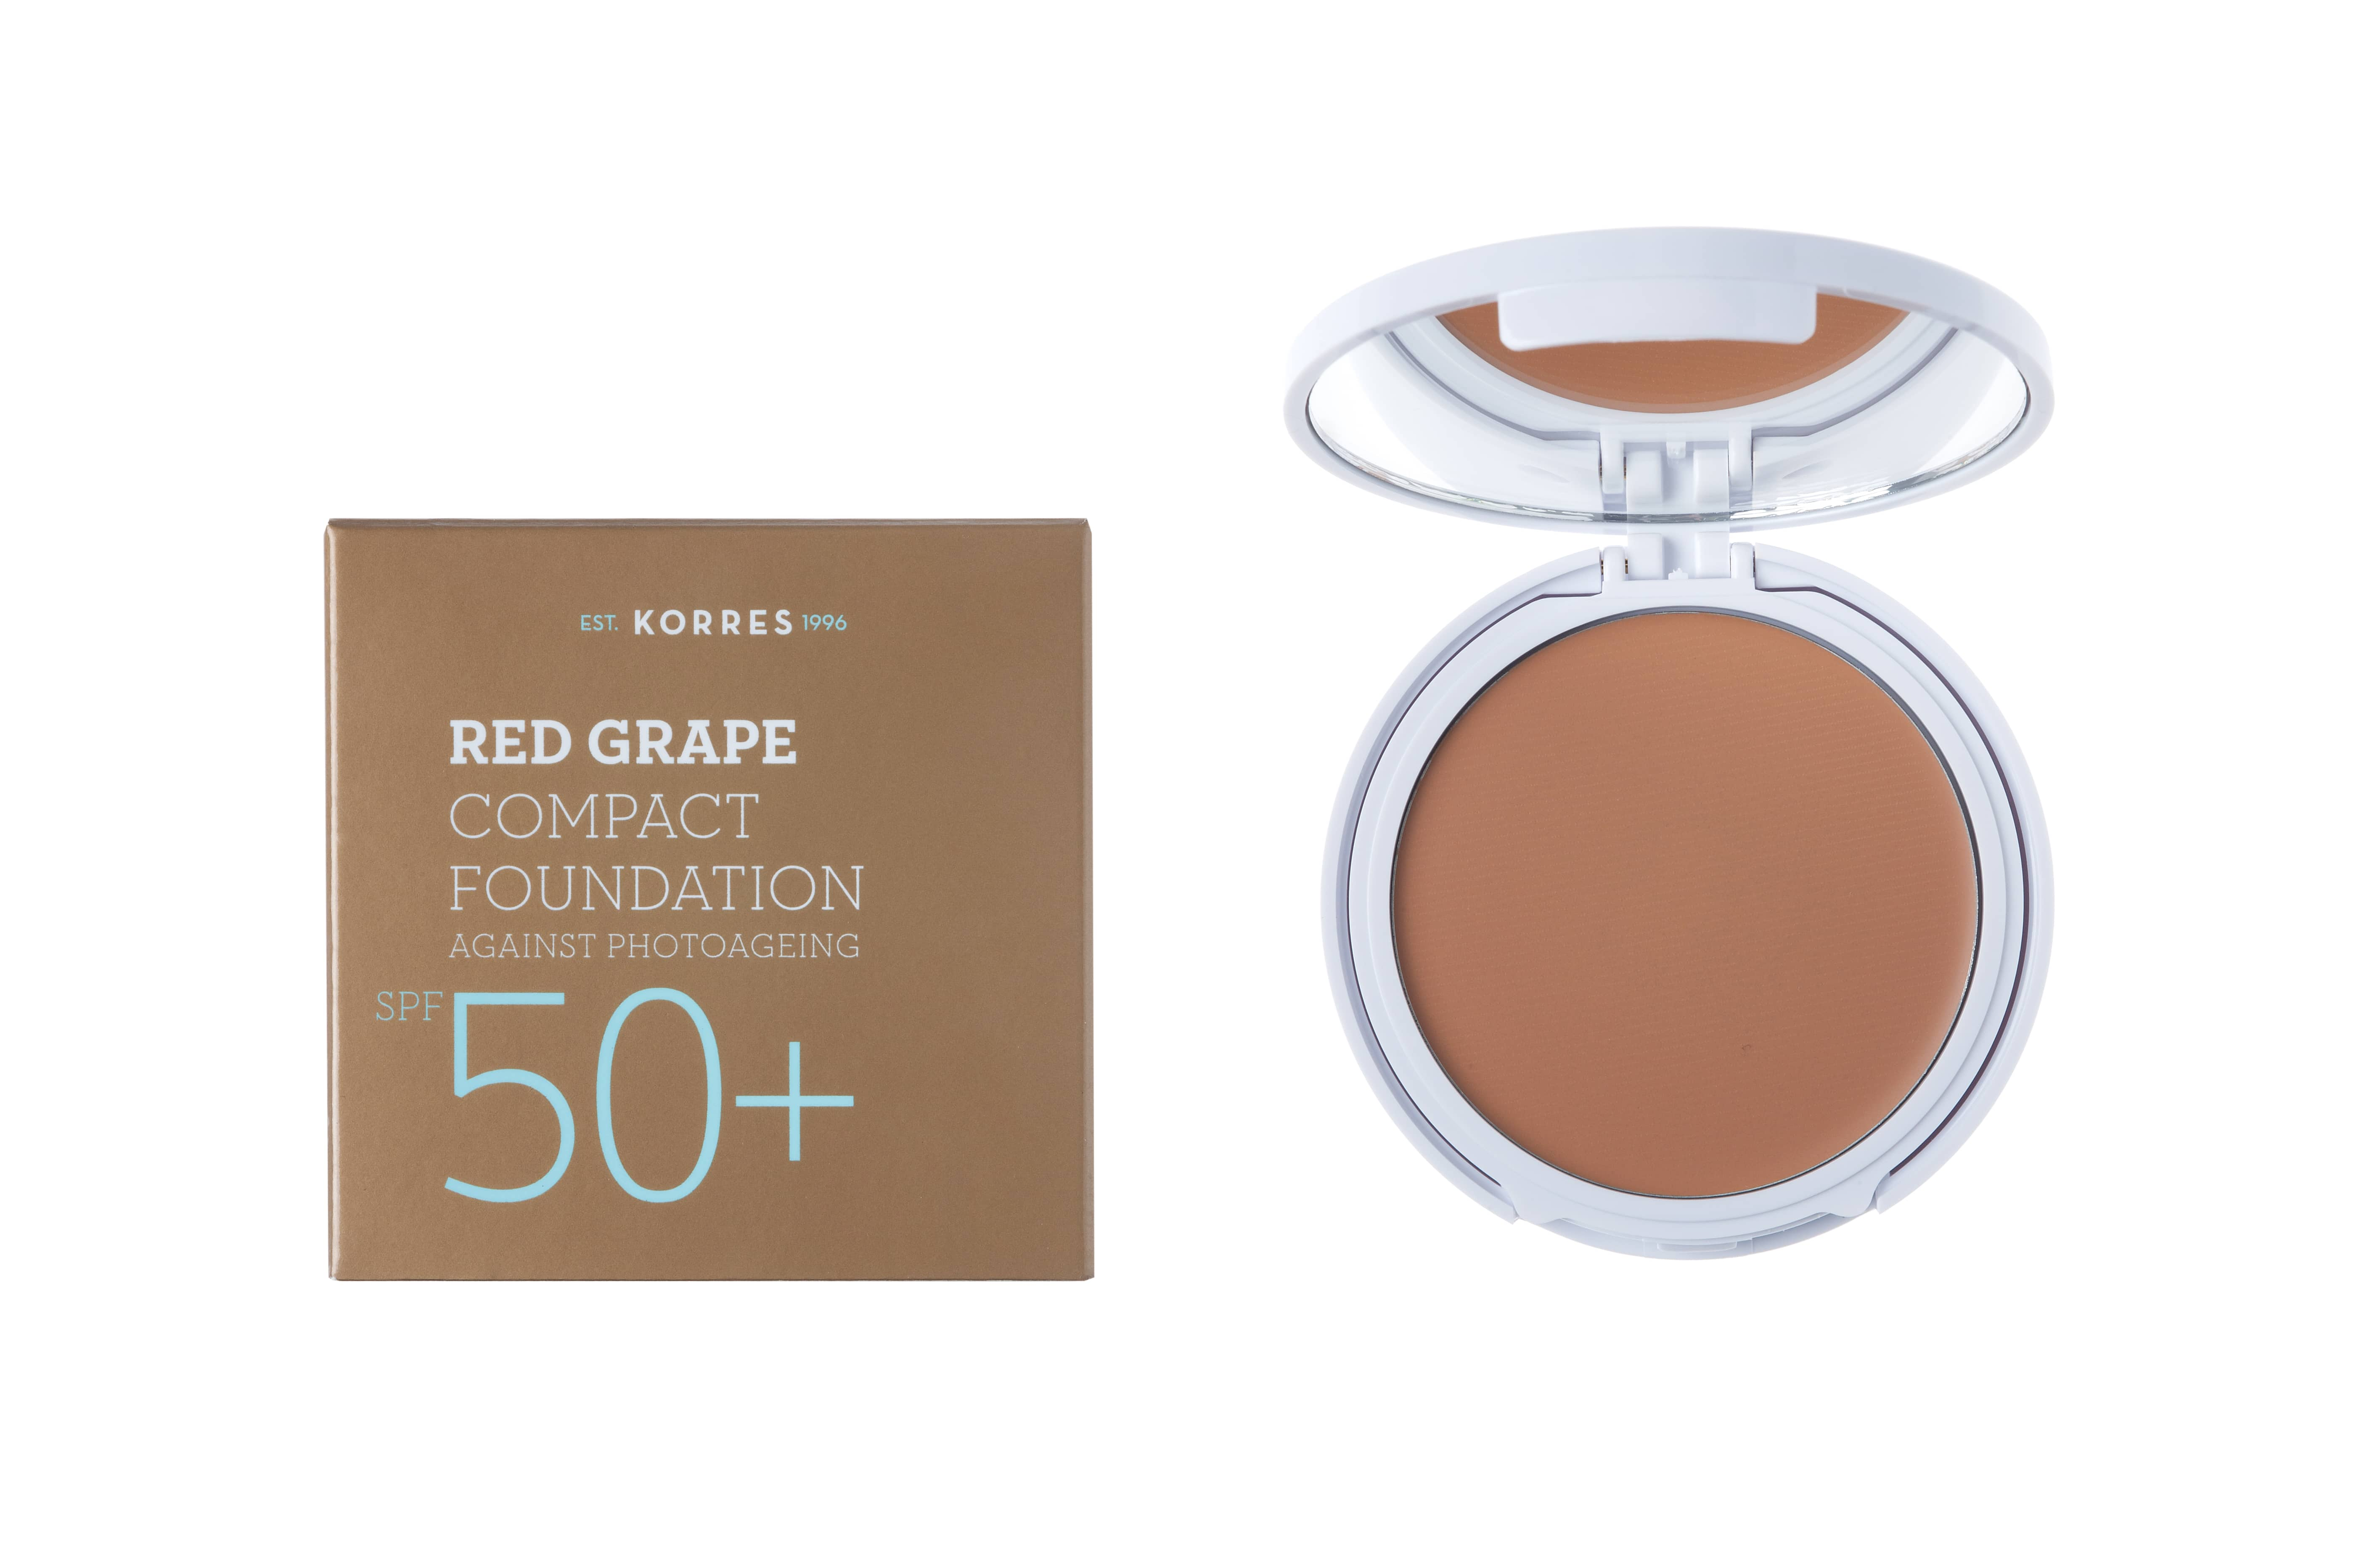 Korres Red Grape Compact Foundation SPF50+ Medium Αντηλιακό Make Up σε μορφή compact με κόκκινο σταφύλι κατά της πρόωρης γήρανσης, Απόχρωση 2 Μεσαία, 8gr